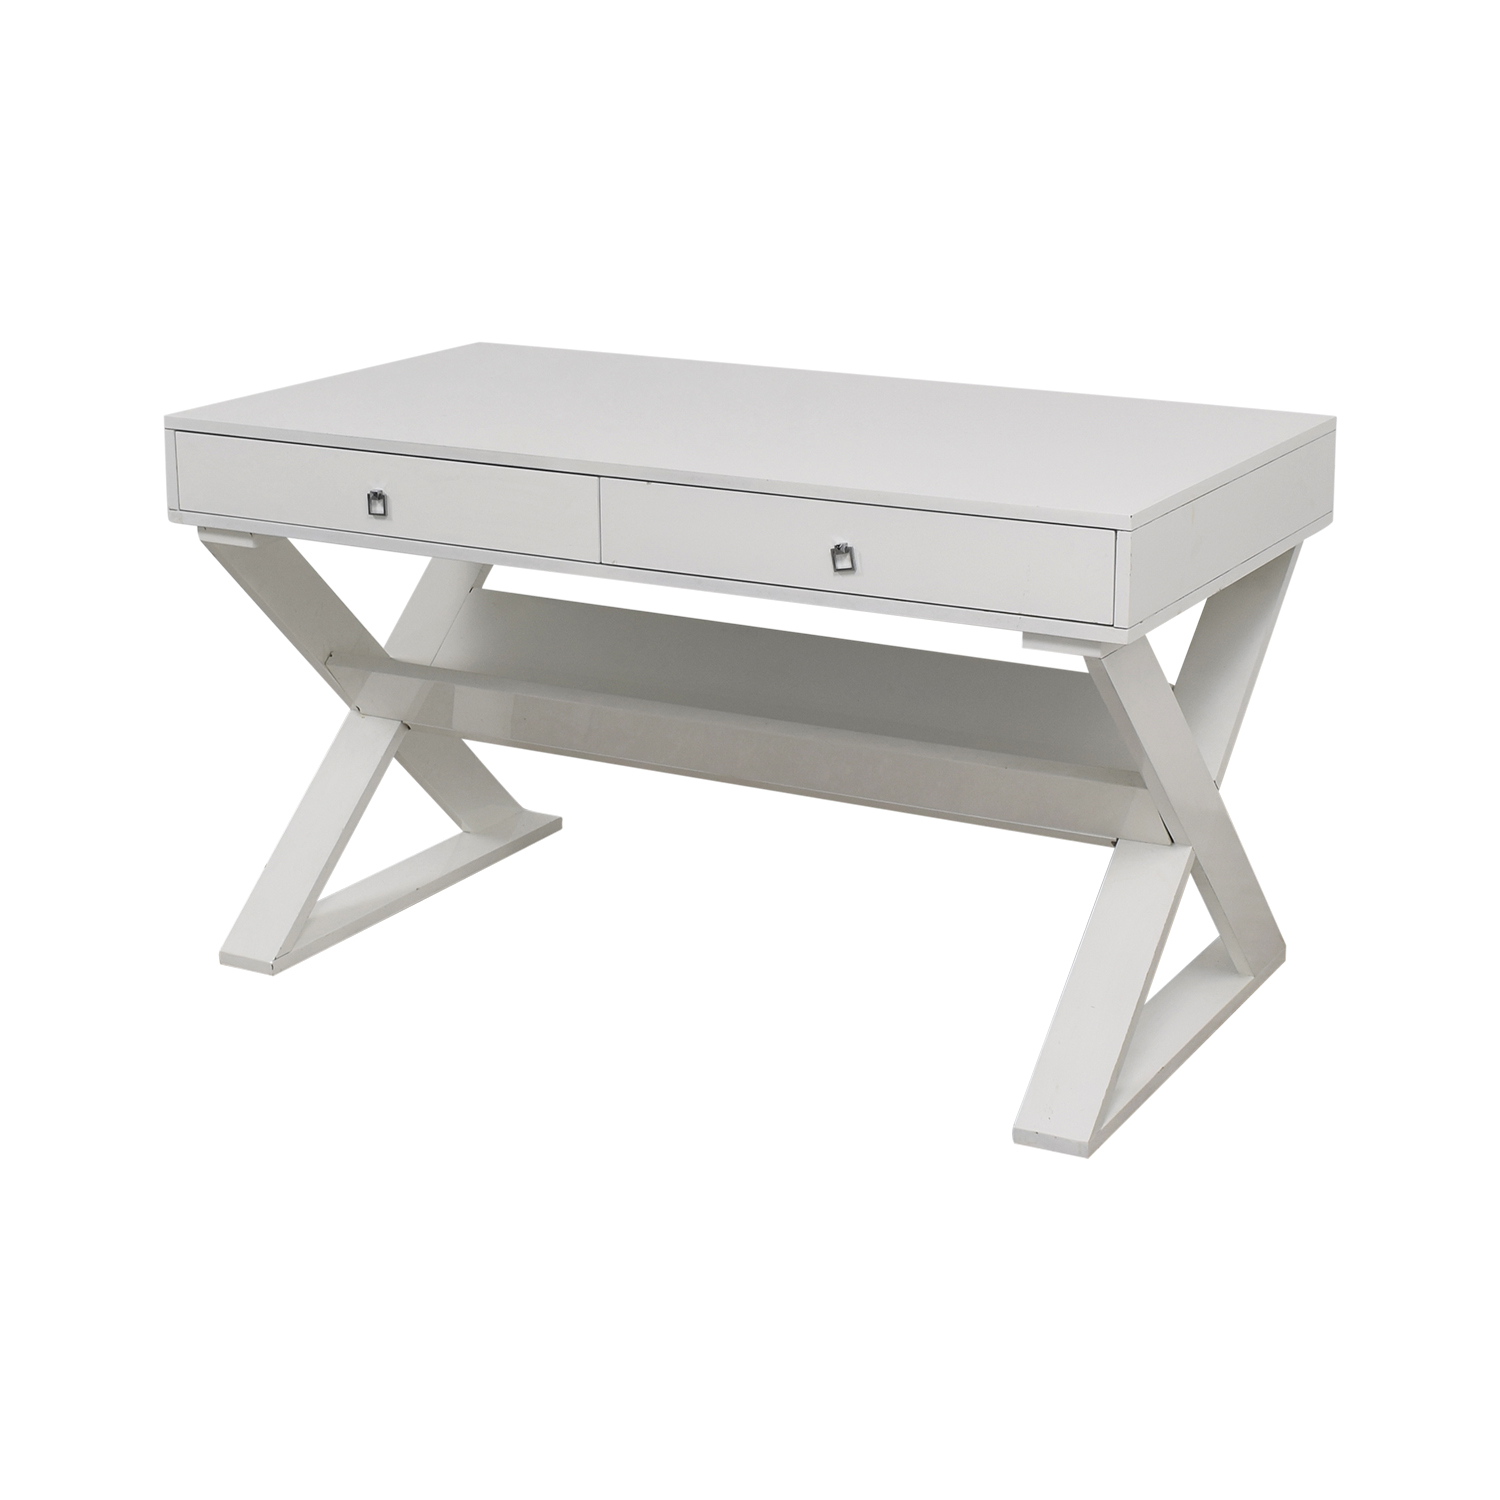 OFF Z Gallerie Z Gallerie Jett White Lacquer Desk Tables